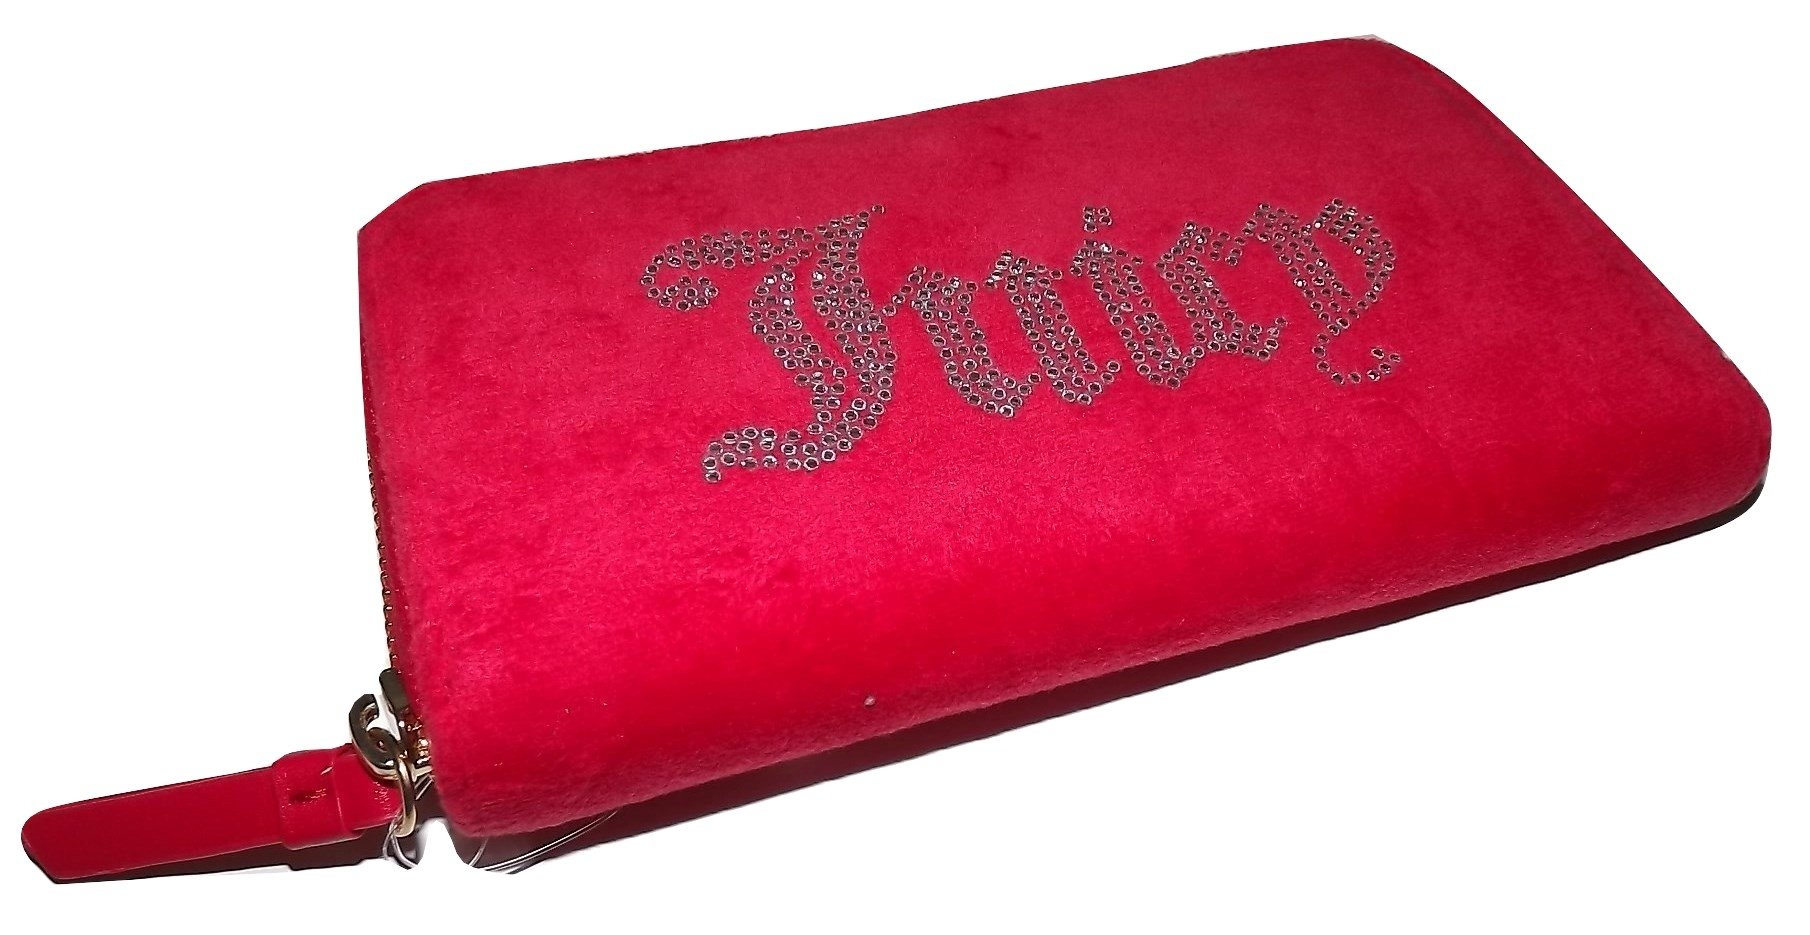 Juicy Couture Women's Zip Around Credit Card Clutch Wallet Bright Red